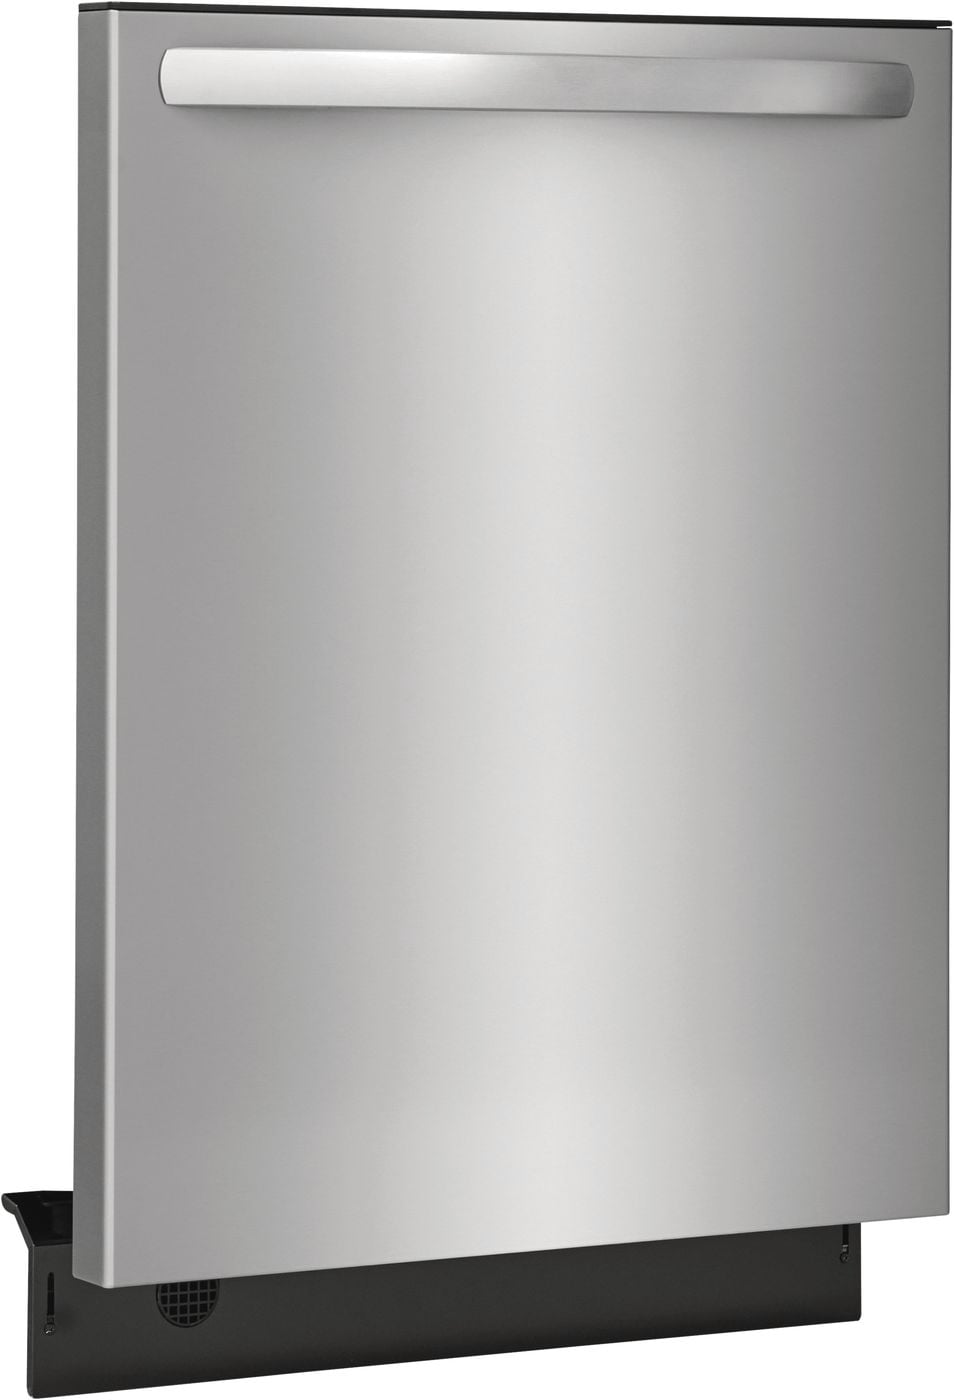 "Model: FDSH4501AS | Frigidaire 24"" Built-in Dishwasher with EvenDry™"